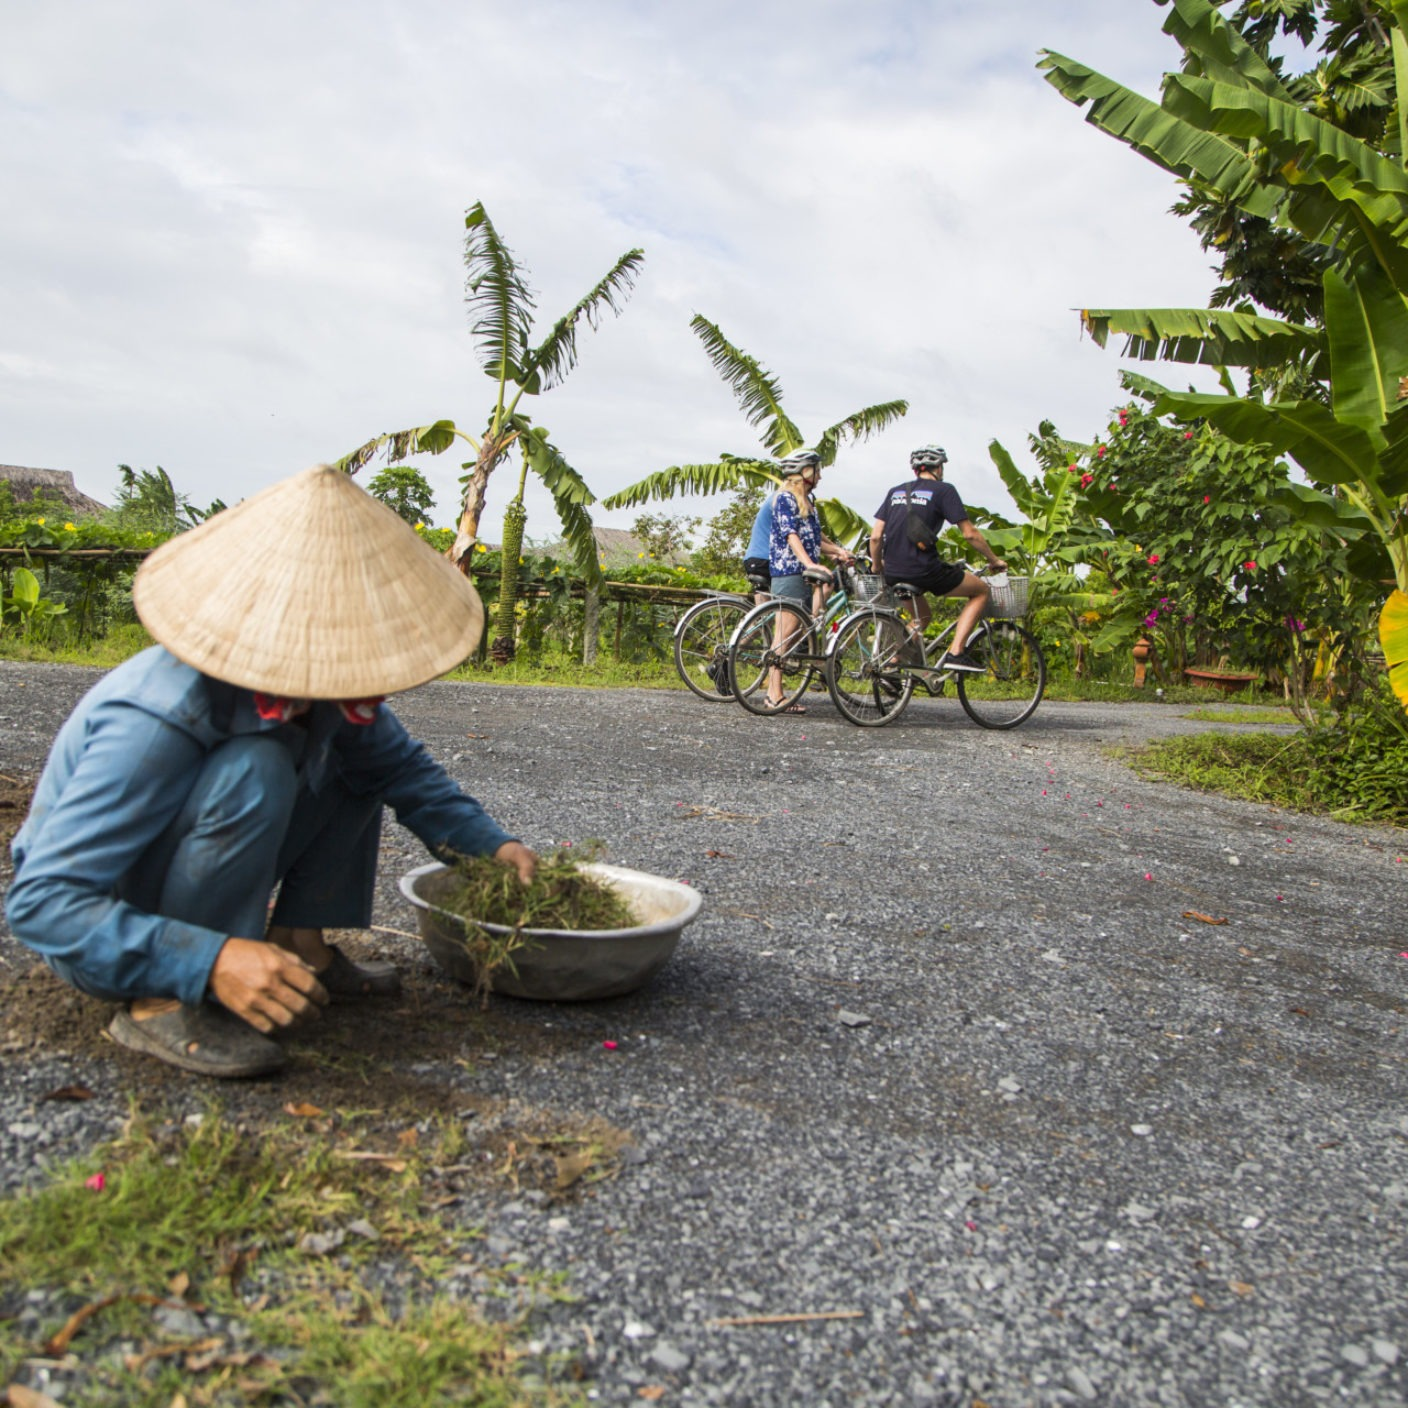 Rice farmer in front of cyclist in Mekong Delta